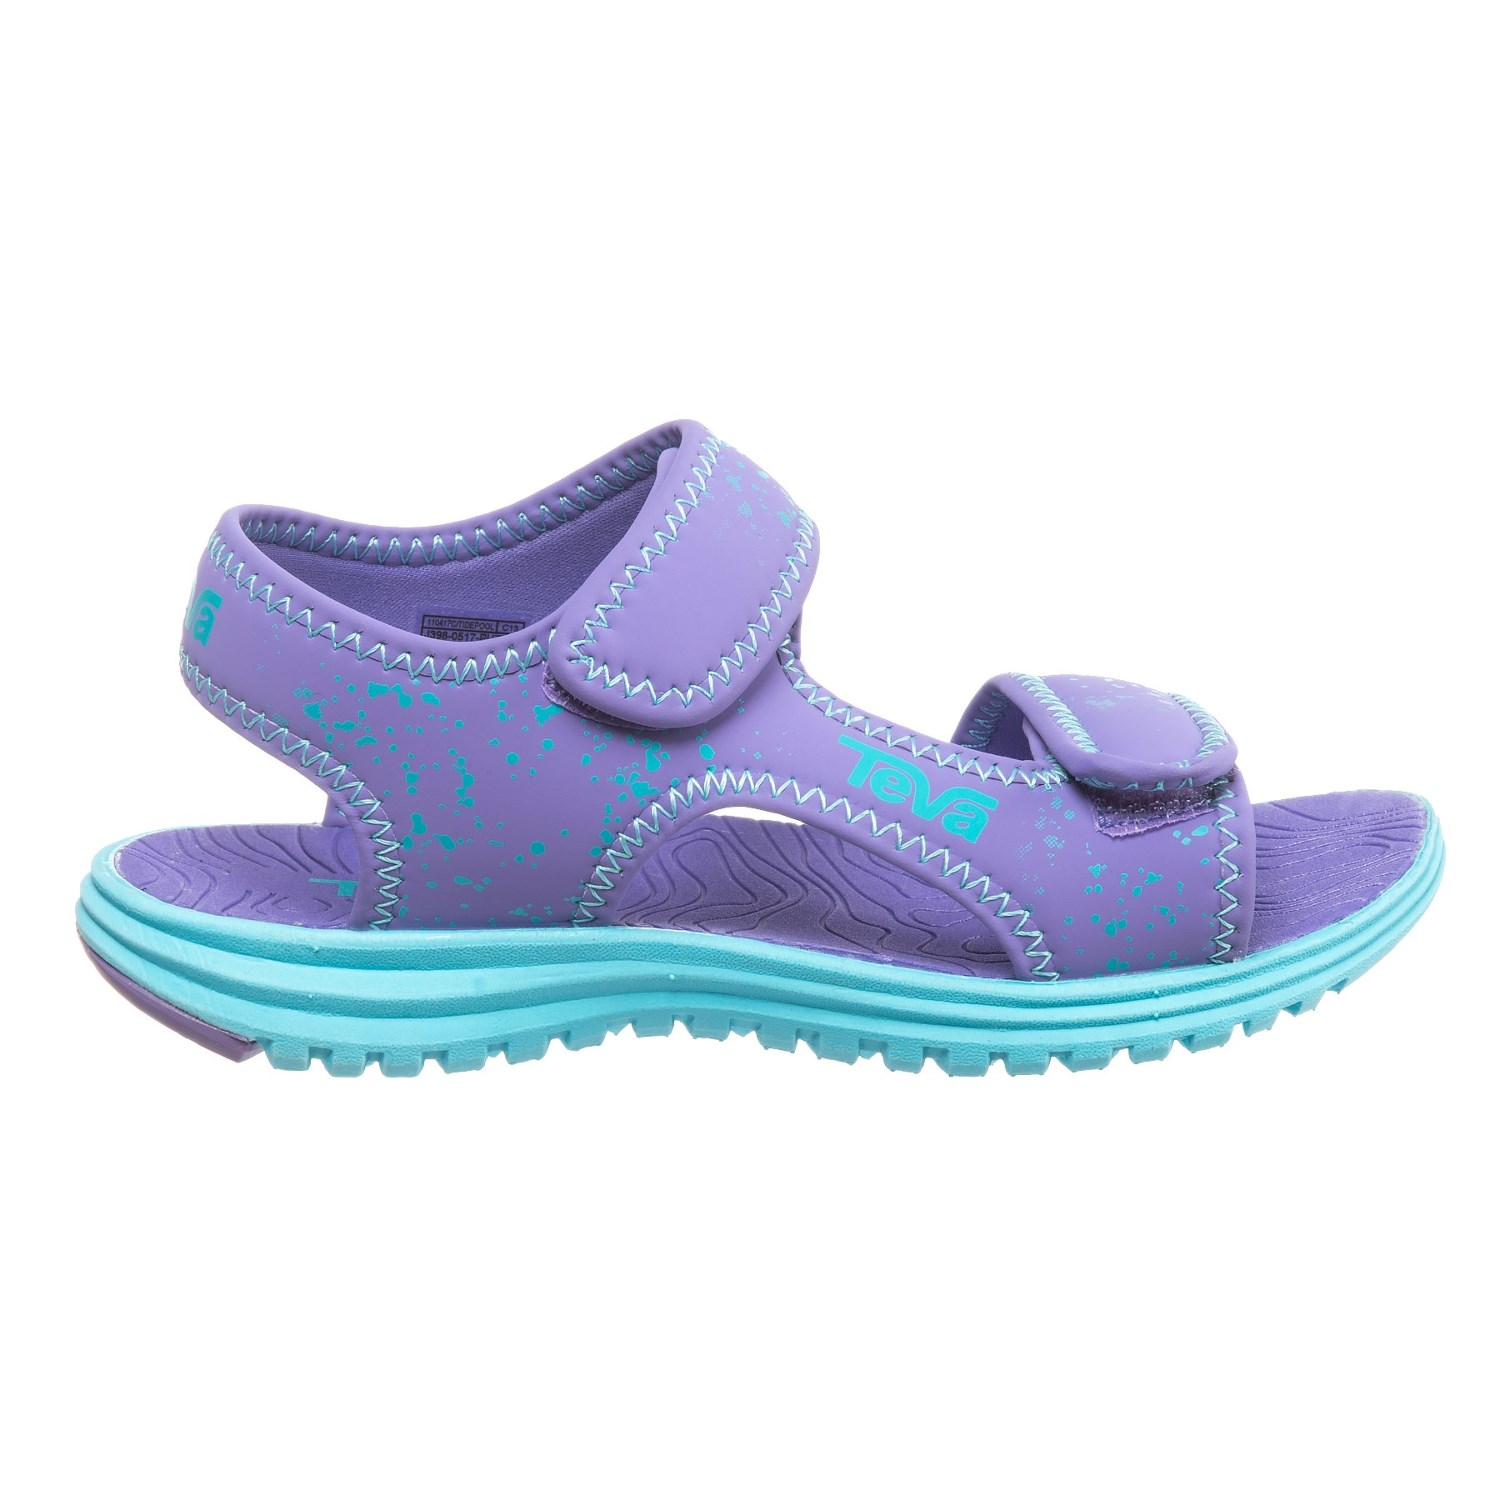 ca70c6f48a74f Teva Tidepool Sport Sandals (For Girls) - Save 33%